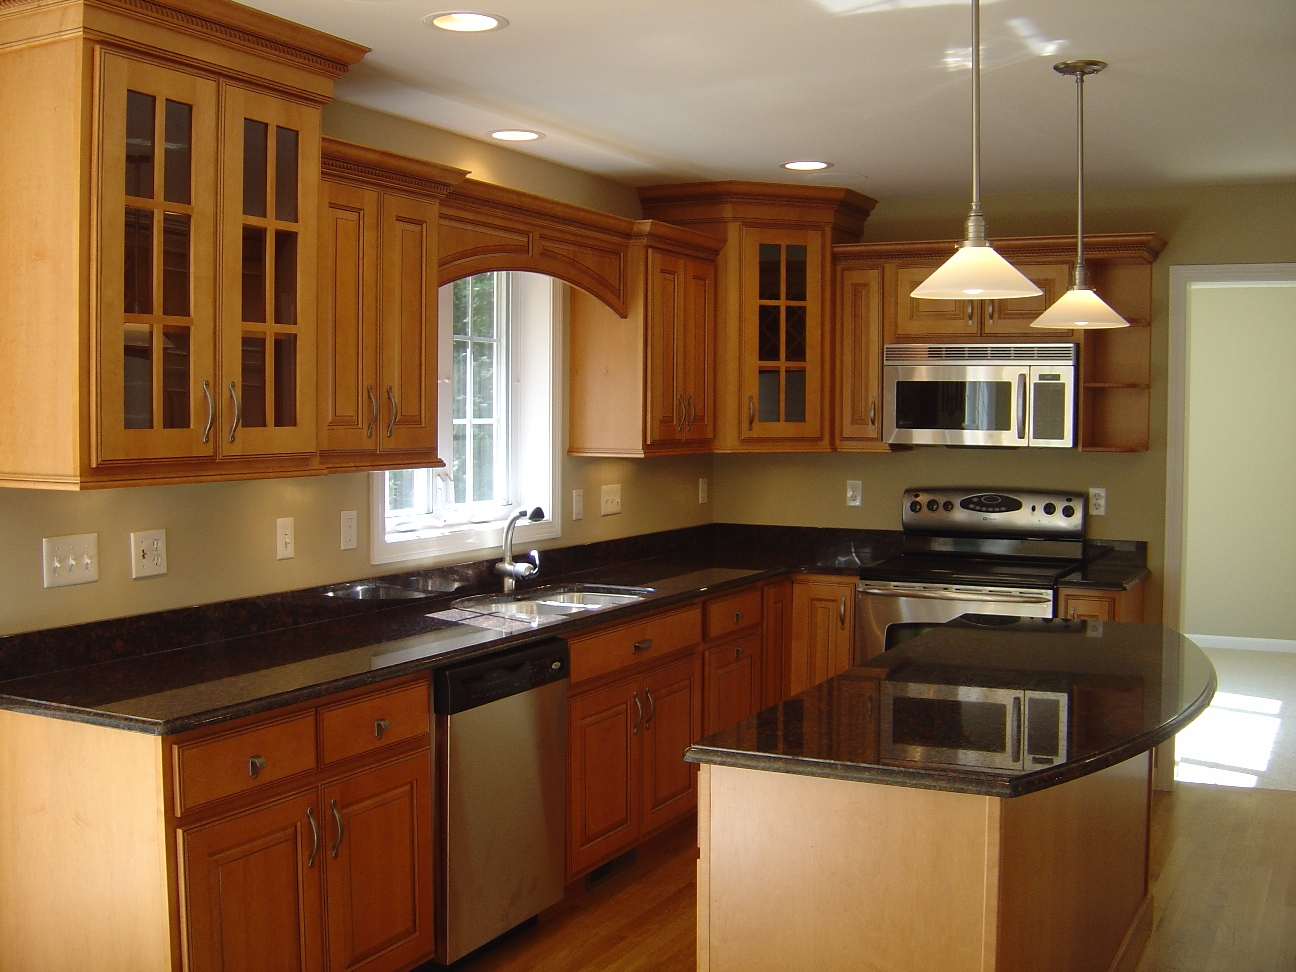 New kitchen design trends kitchen designs for Kitchen remodel trends